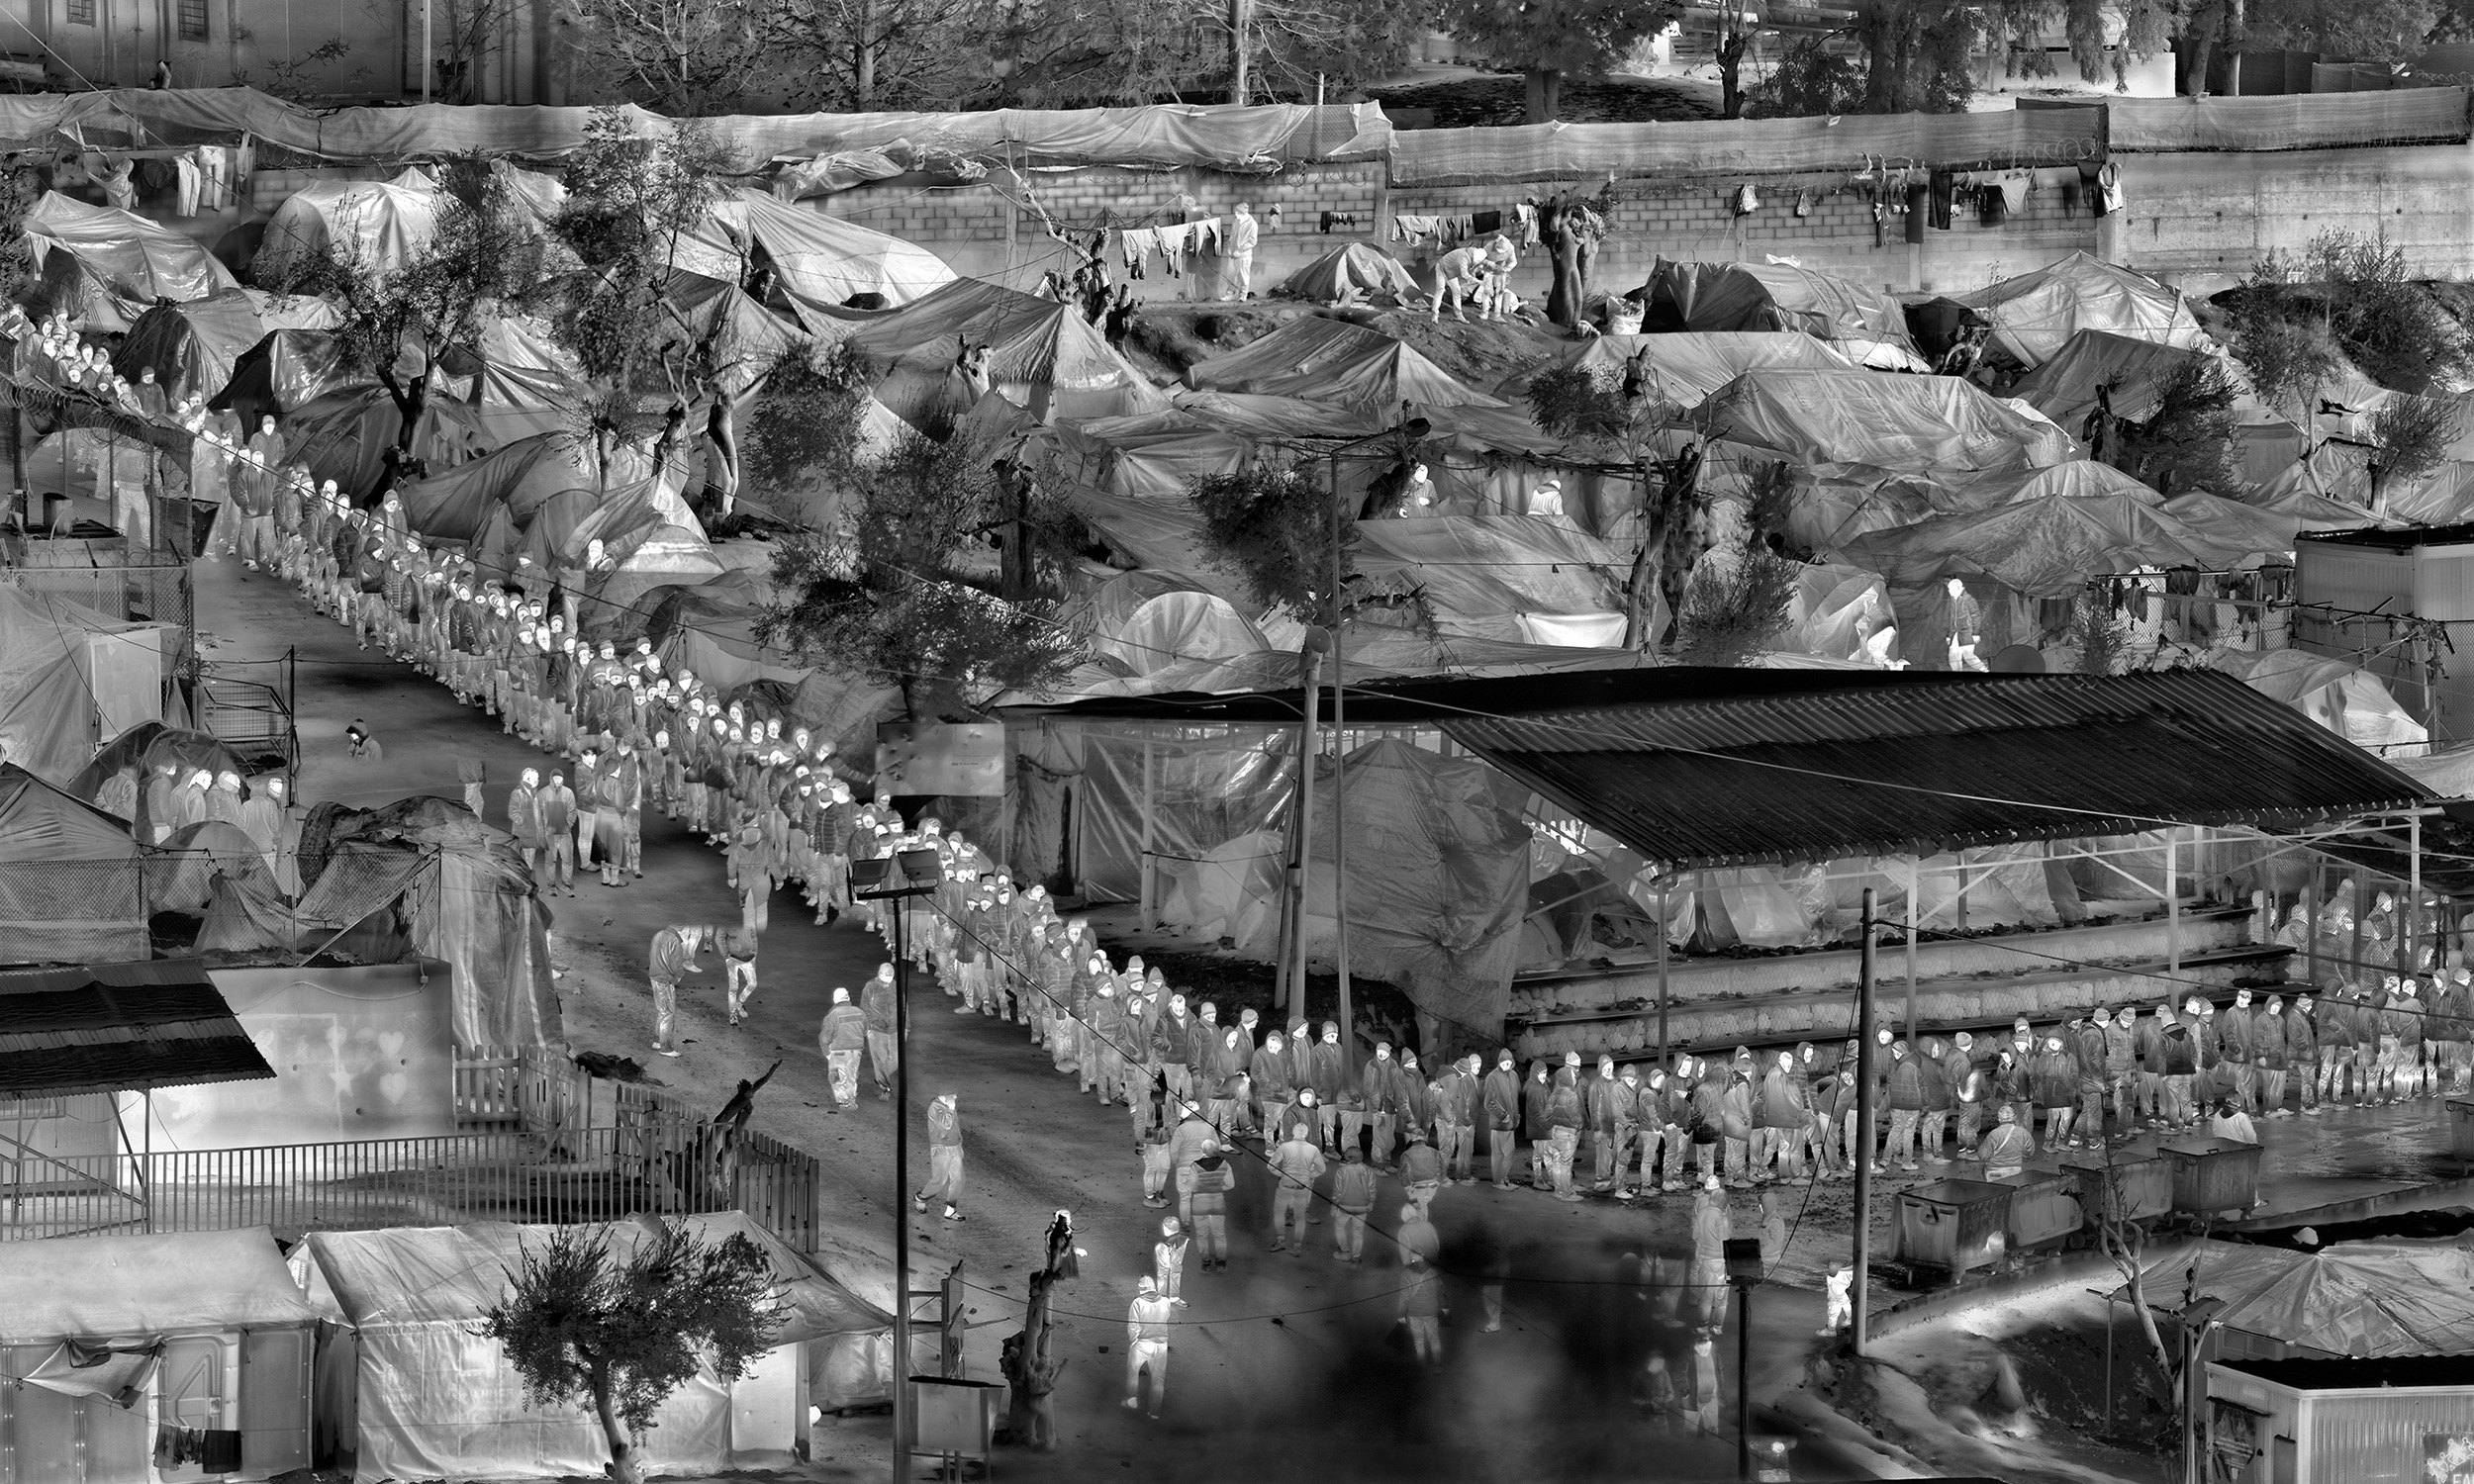 Richard Mosse, Detail from <em>Moria in Snow</em>, Lesbos, Greece, 2017, digital C print on metallic paper, 35.5 x 120 inches